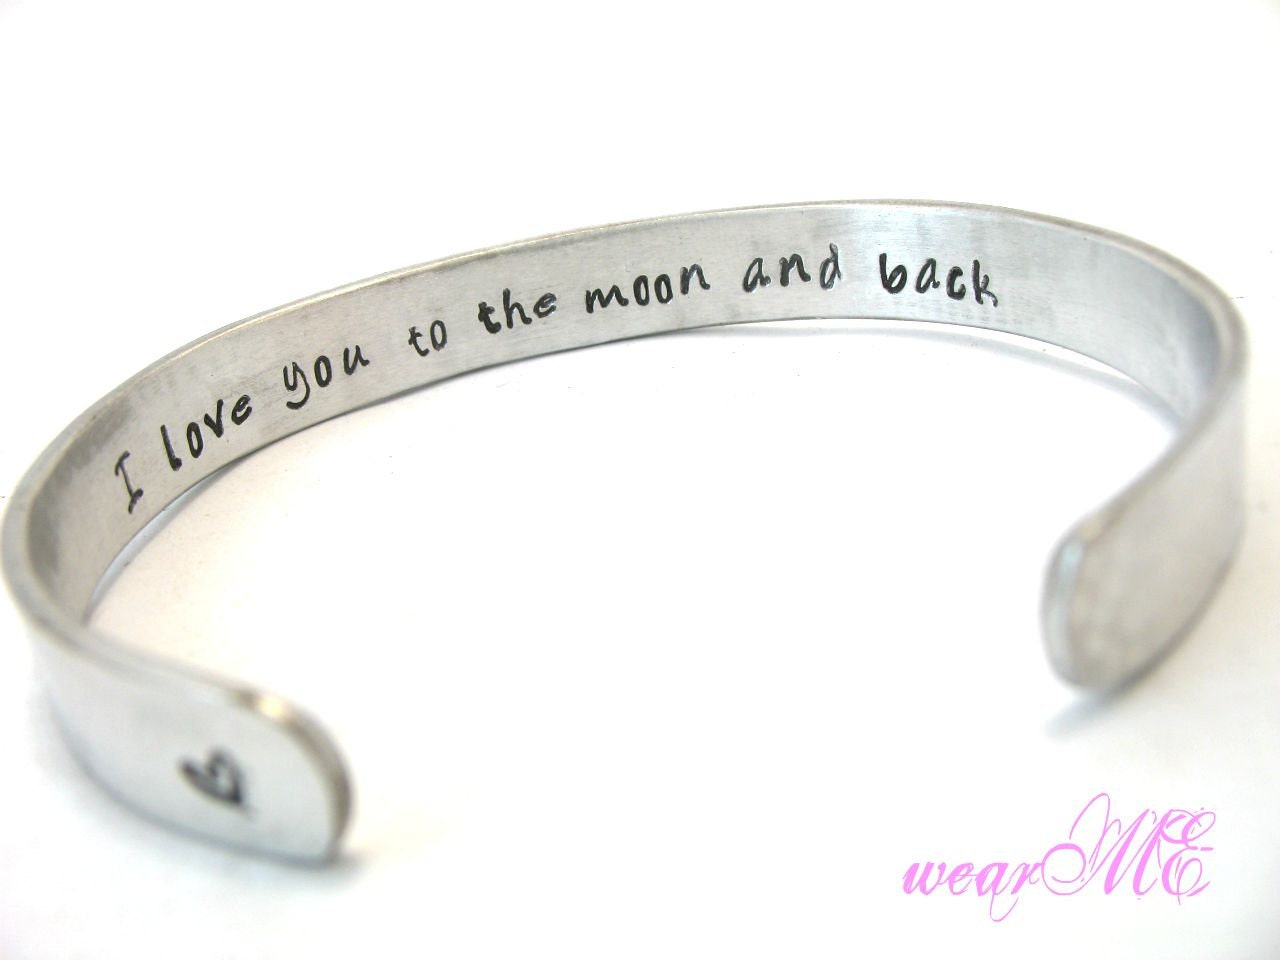 infinity anniversary wedding bangle sterling silver bracelets media present bracelet bangles date personalized